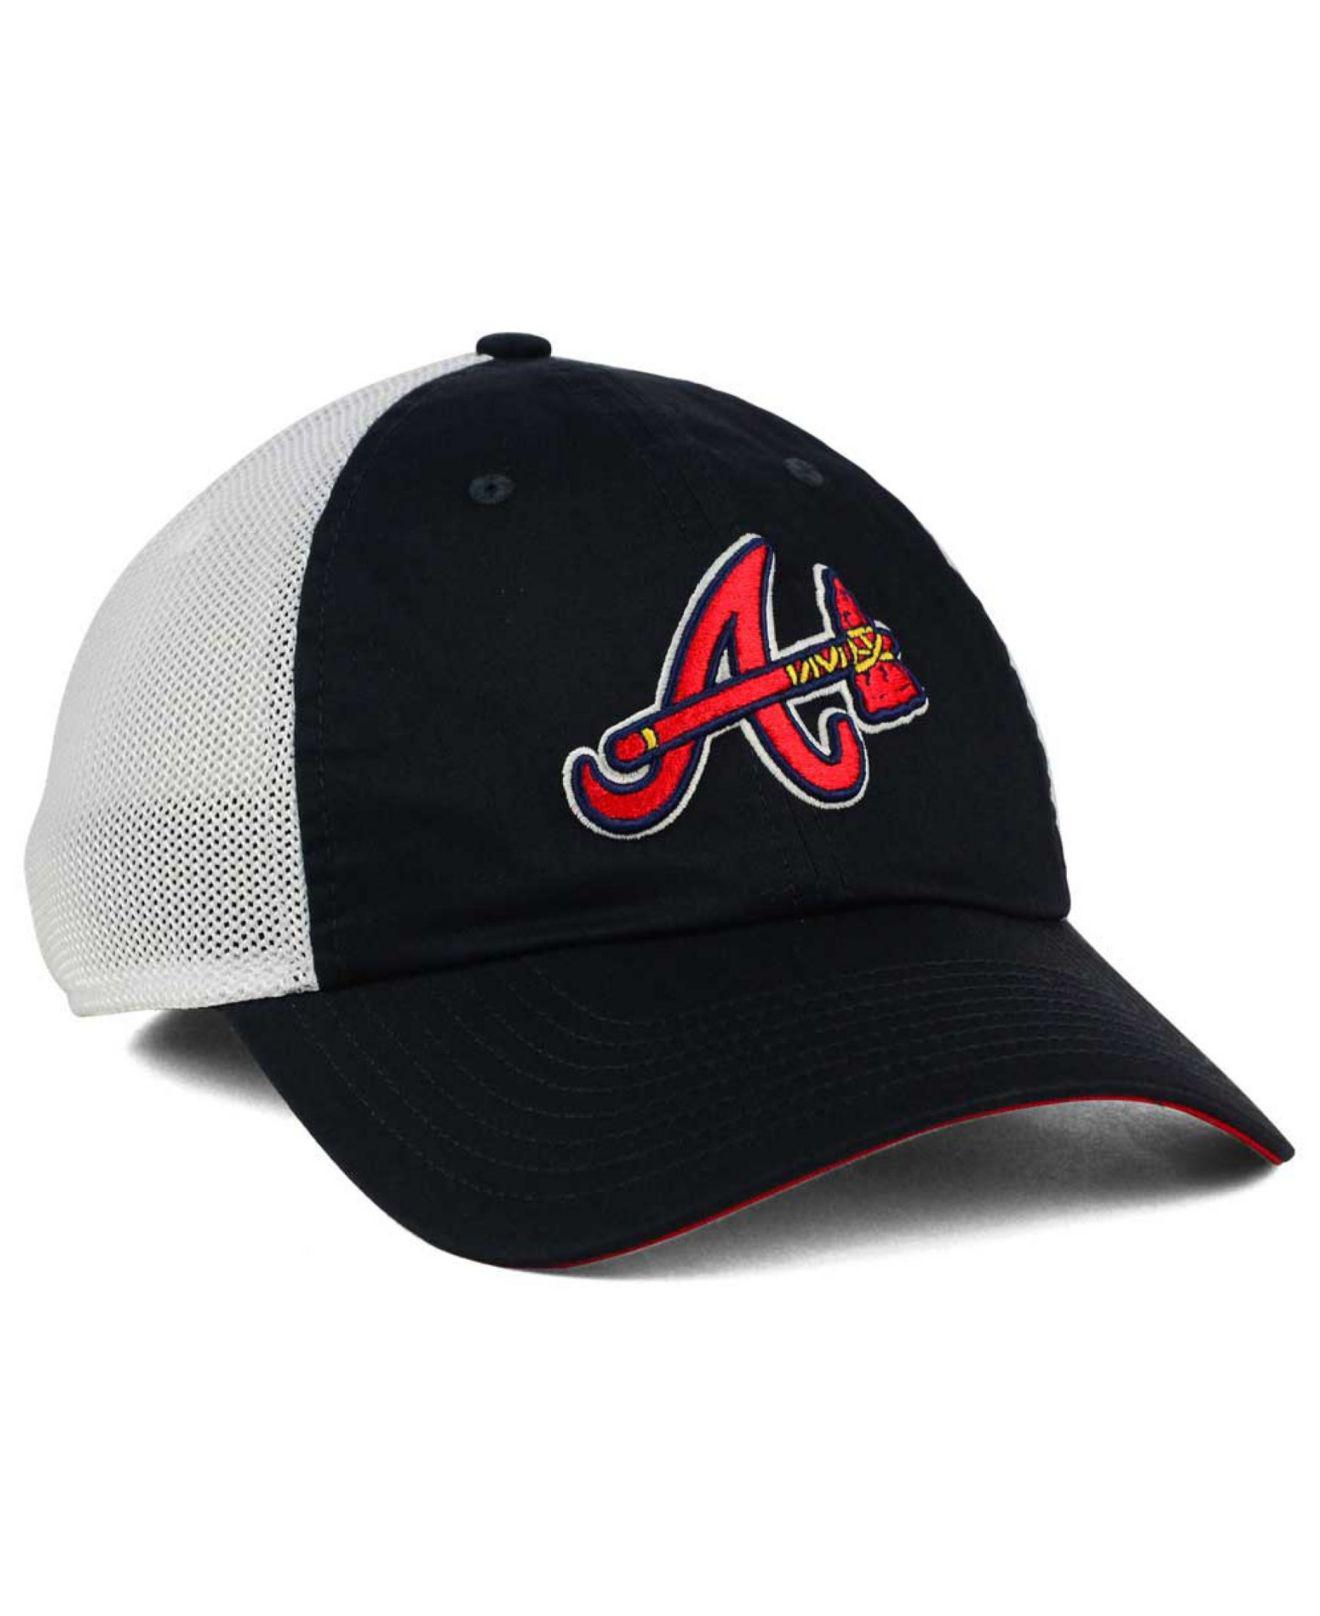 Lyst - Nike Atlanta Braves Dri-fit Mesh Swoosh Adjustable Cap in ... c524c9cdc71b